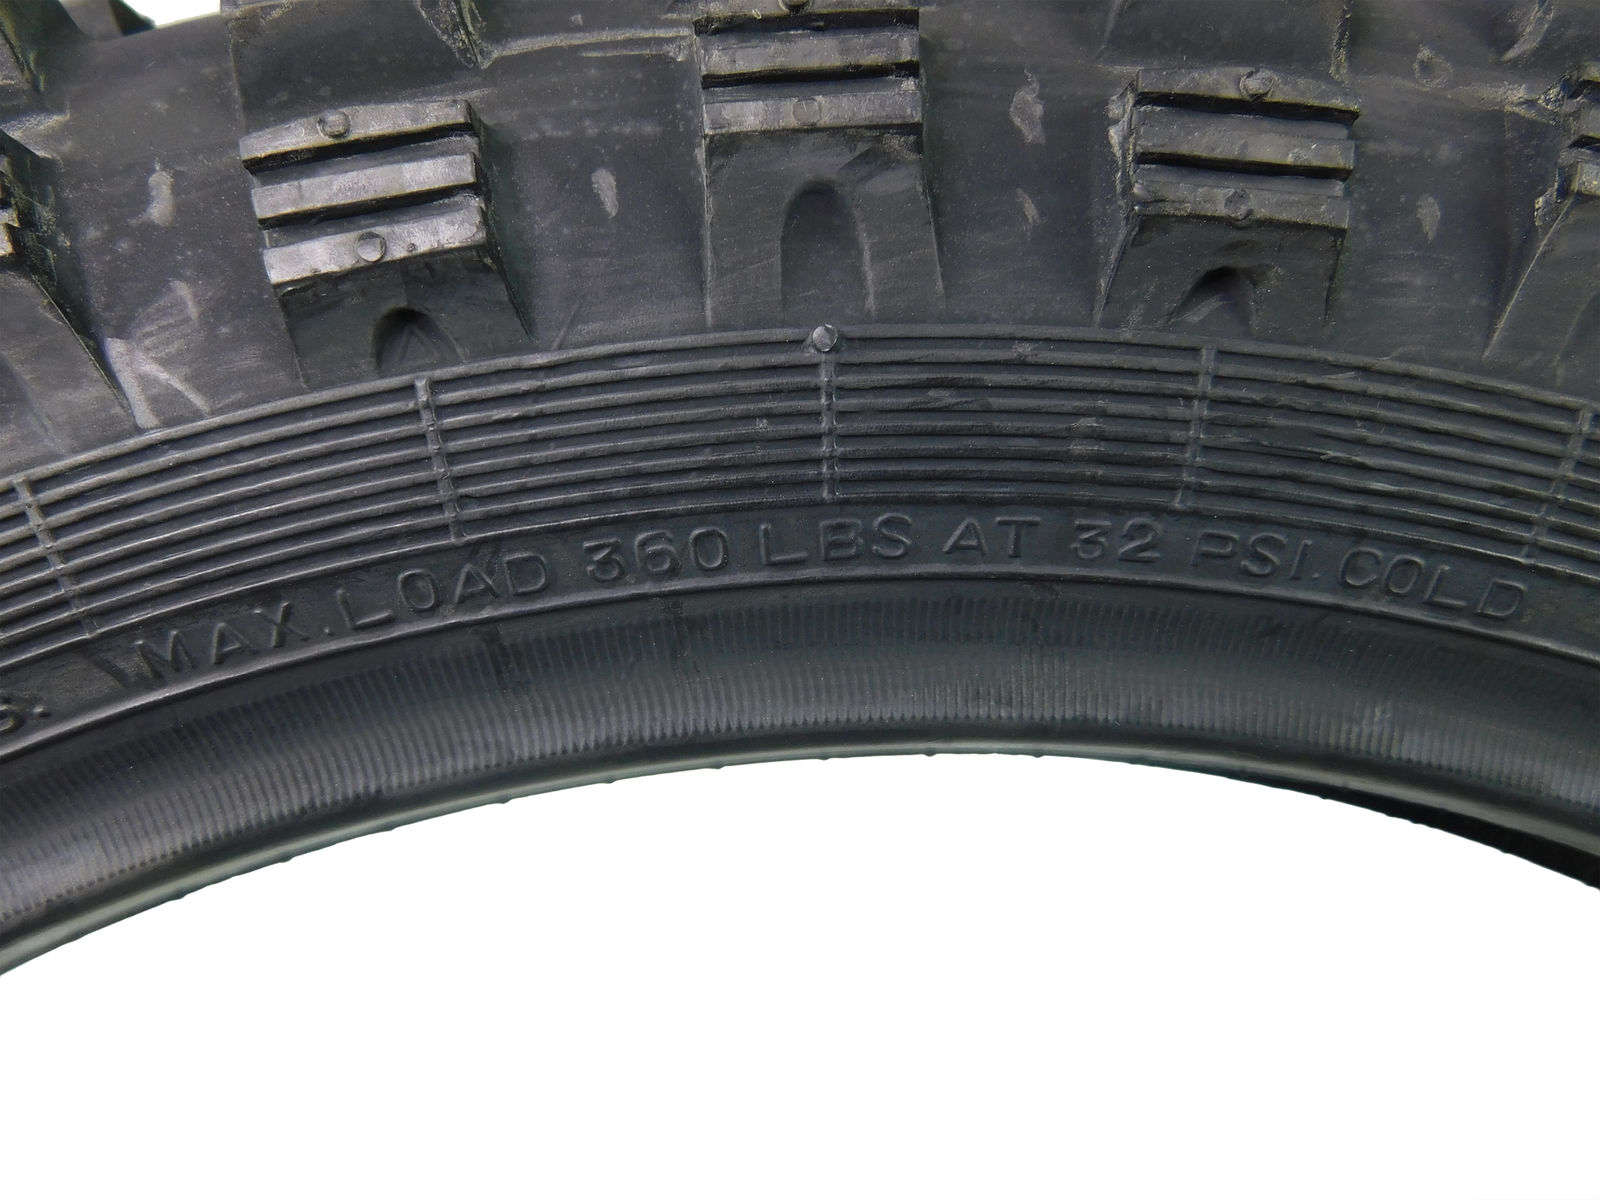 CST-3.00-16-REAR-Off-Road-4-PLY-Intermediate-Dirt-Bike-Tire-image-4